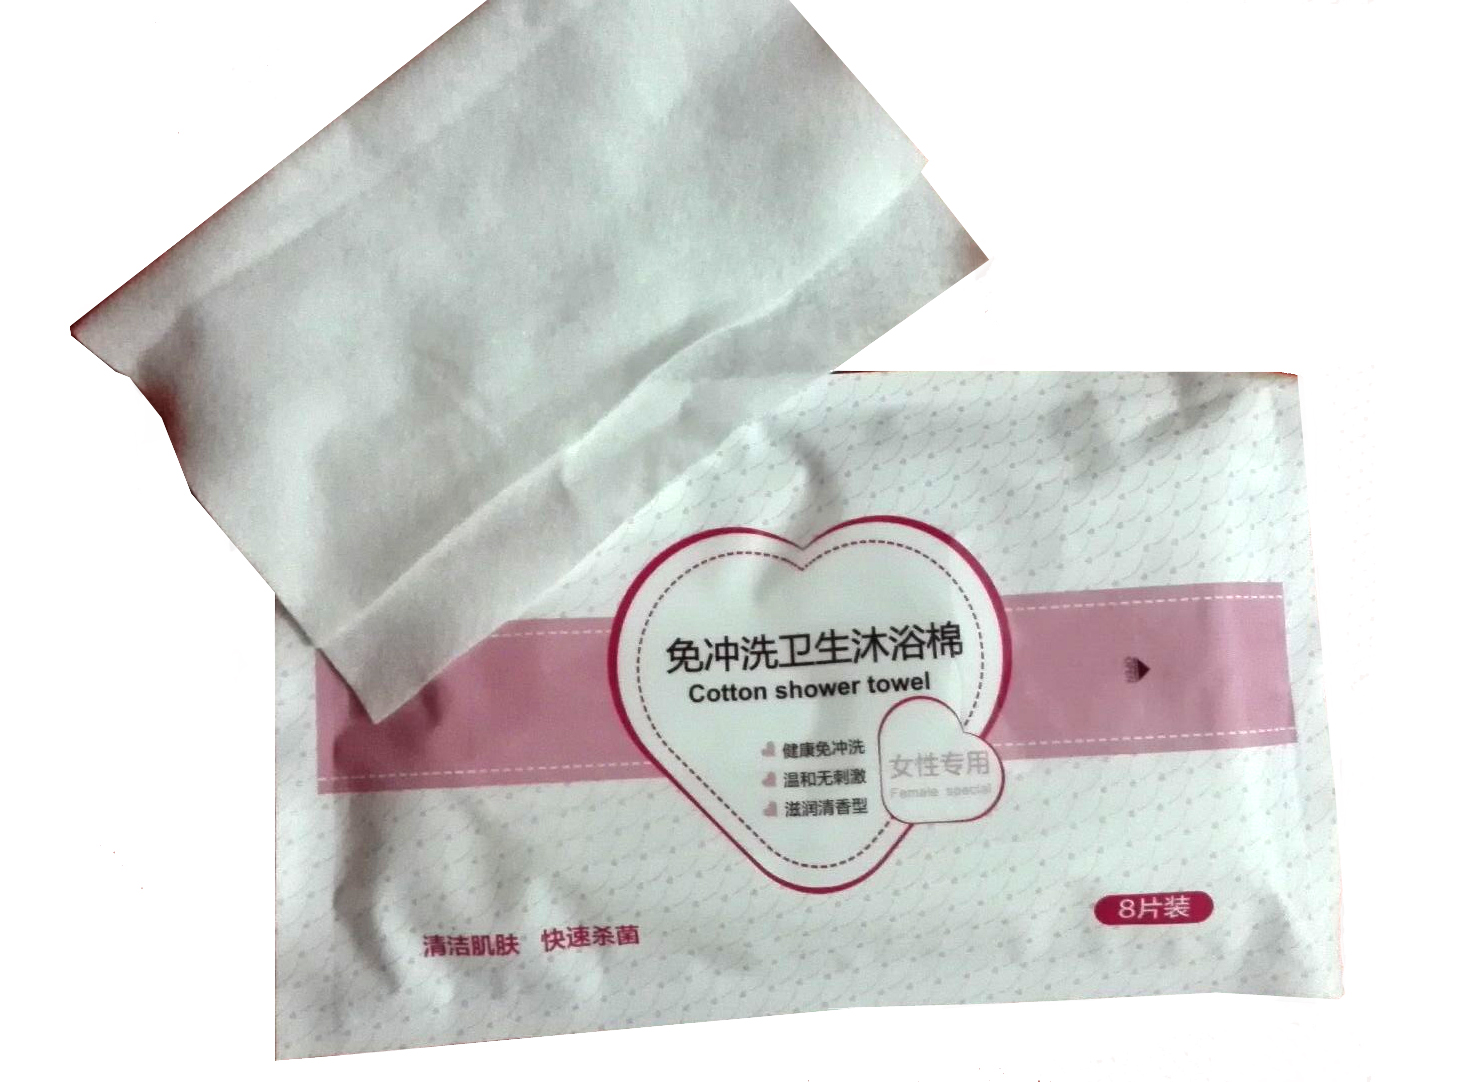 Moist CHG bath wipes